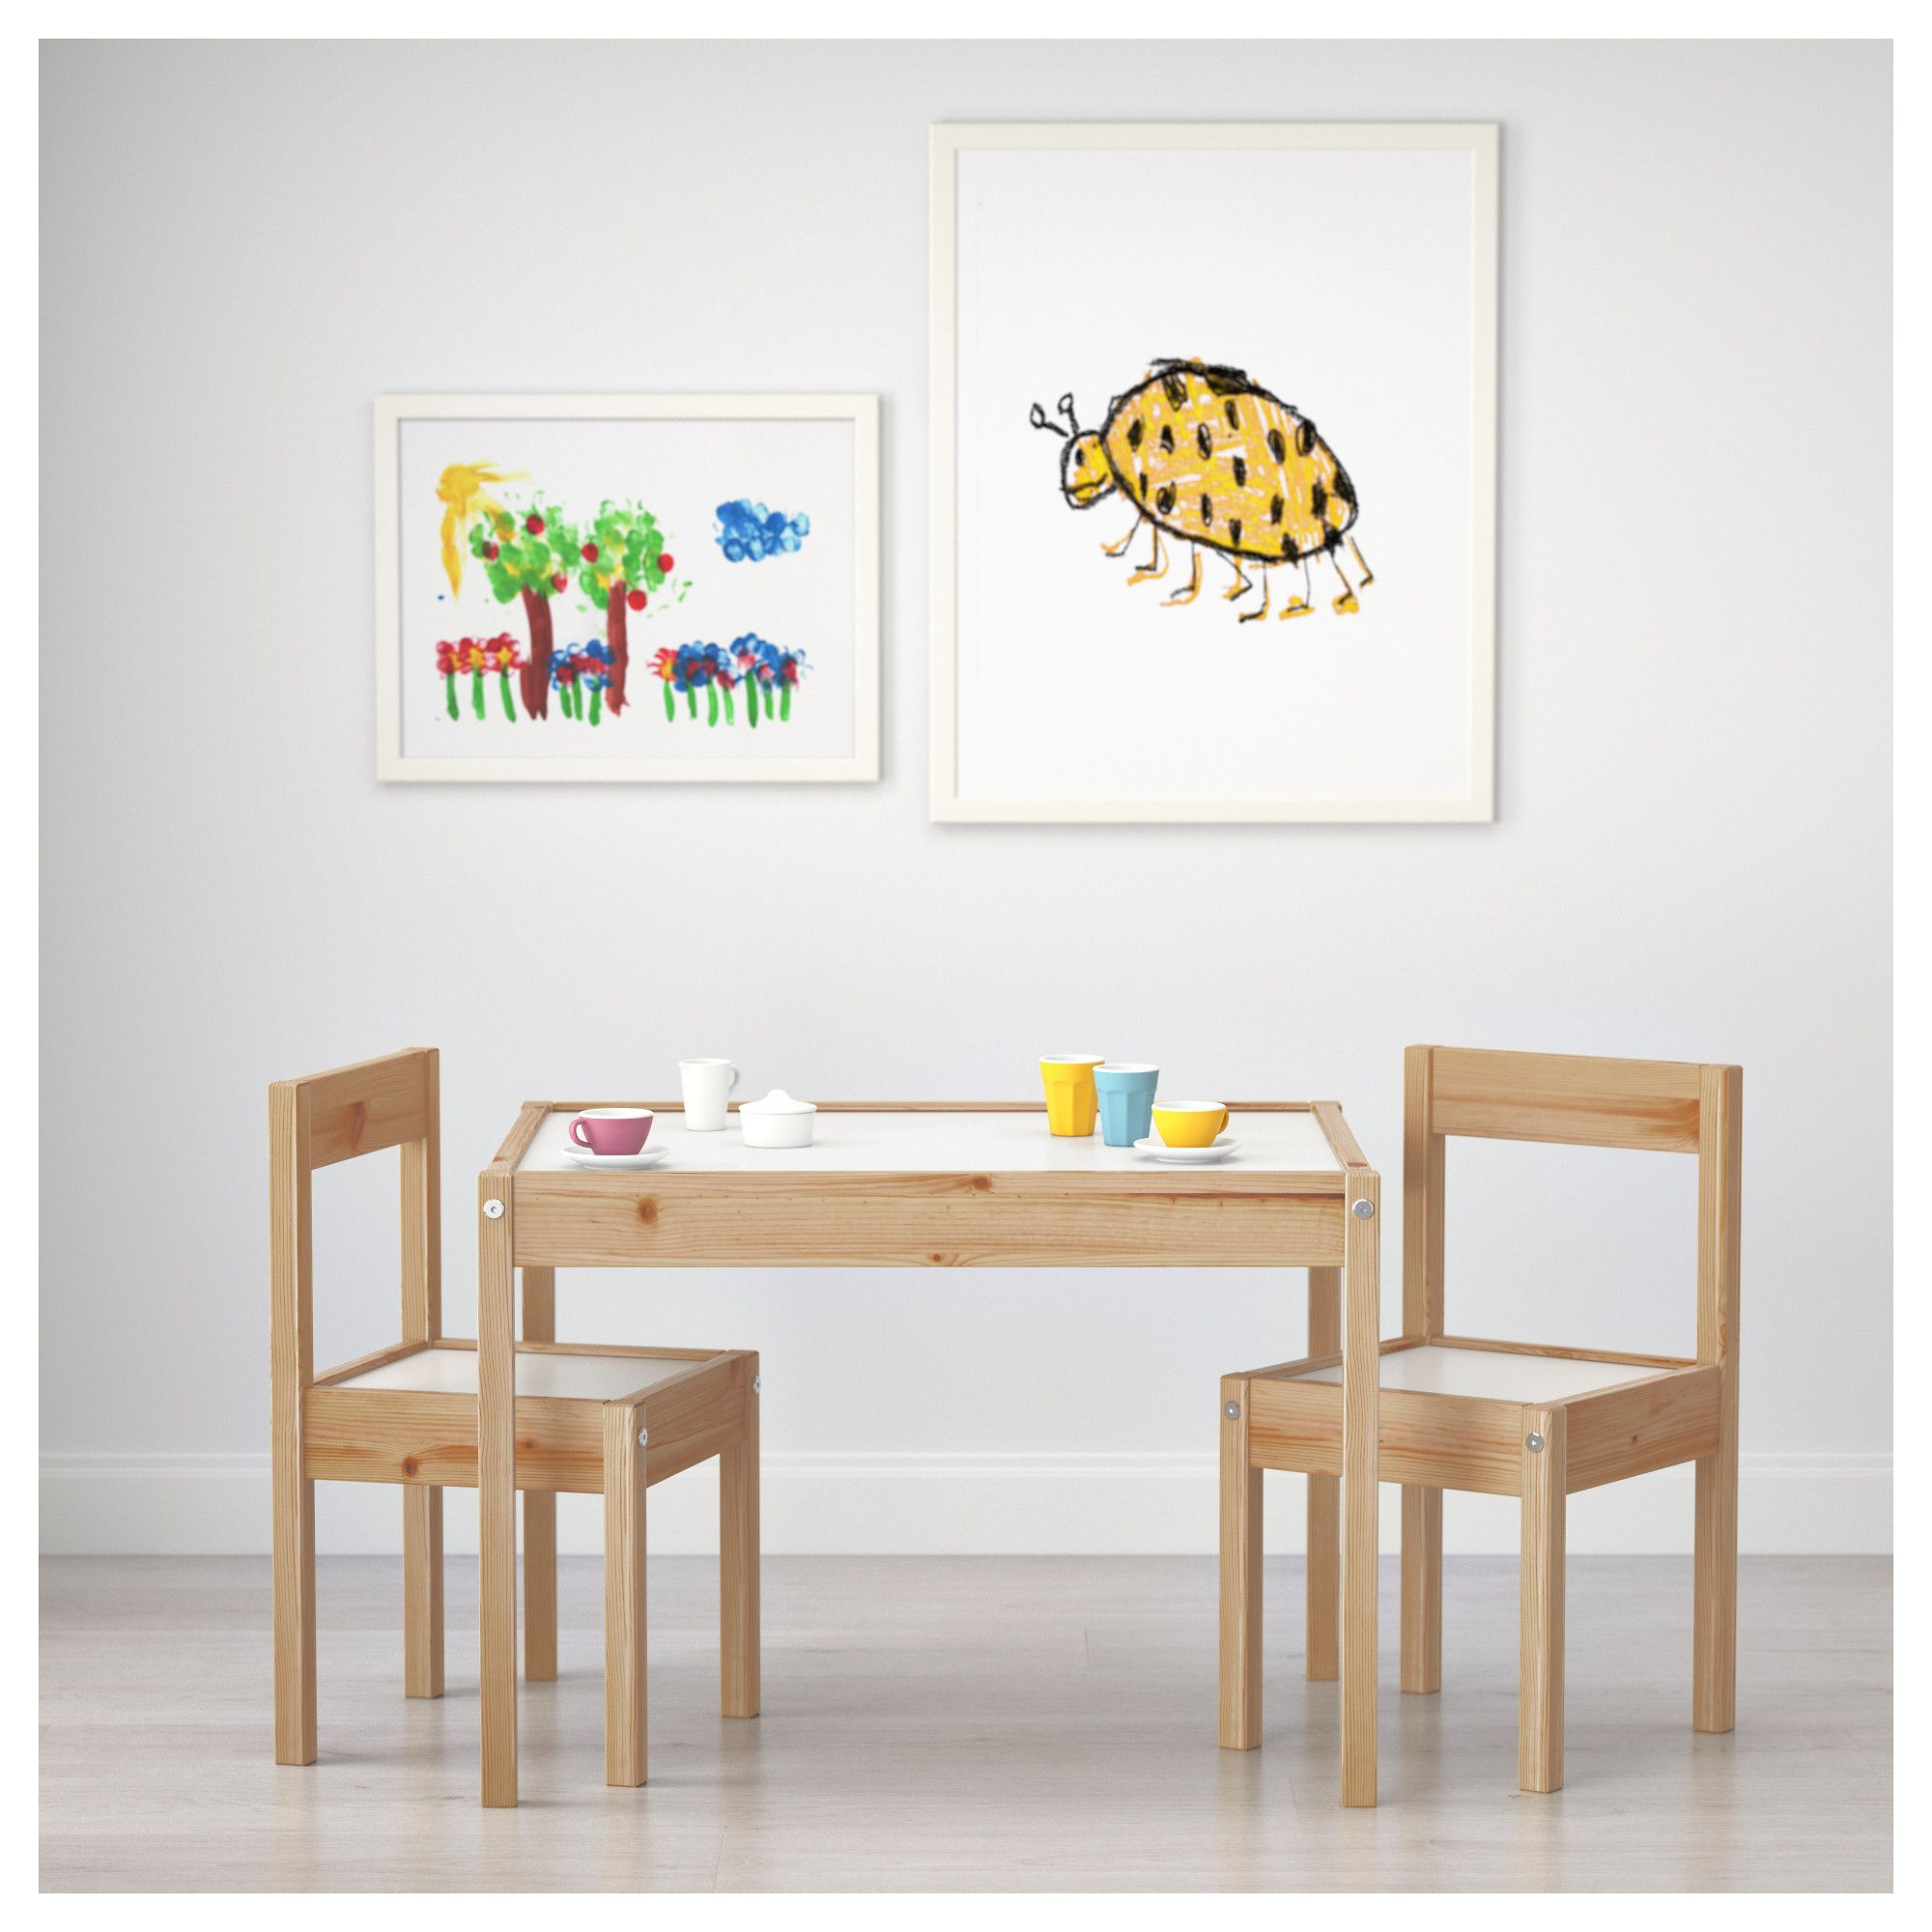 Ikea L 196 Tt Children S Table And 2 Chairs White Pine